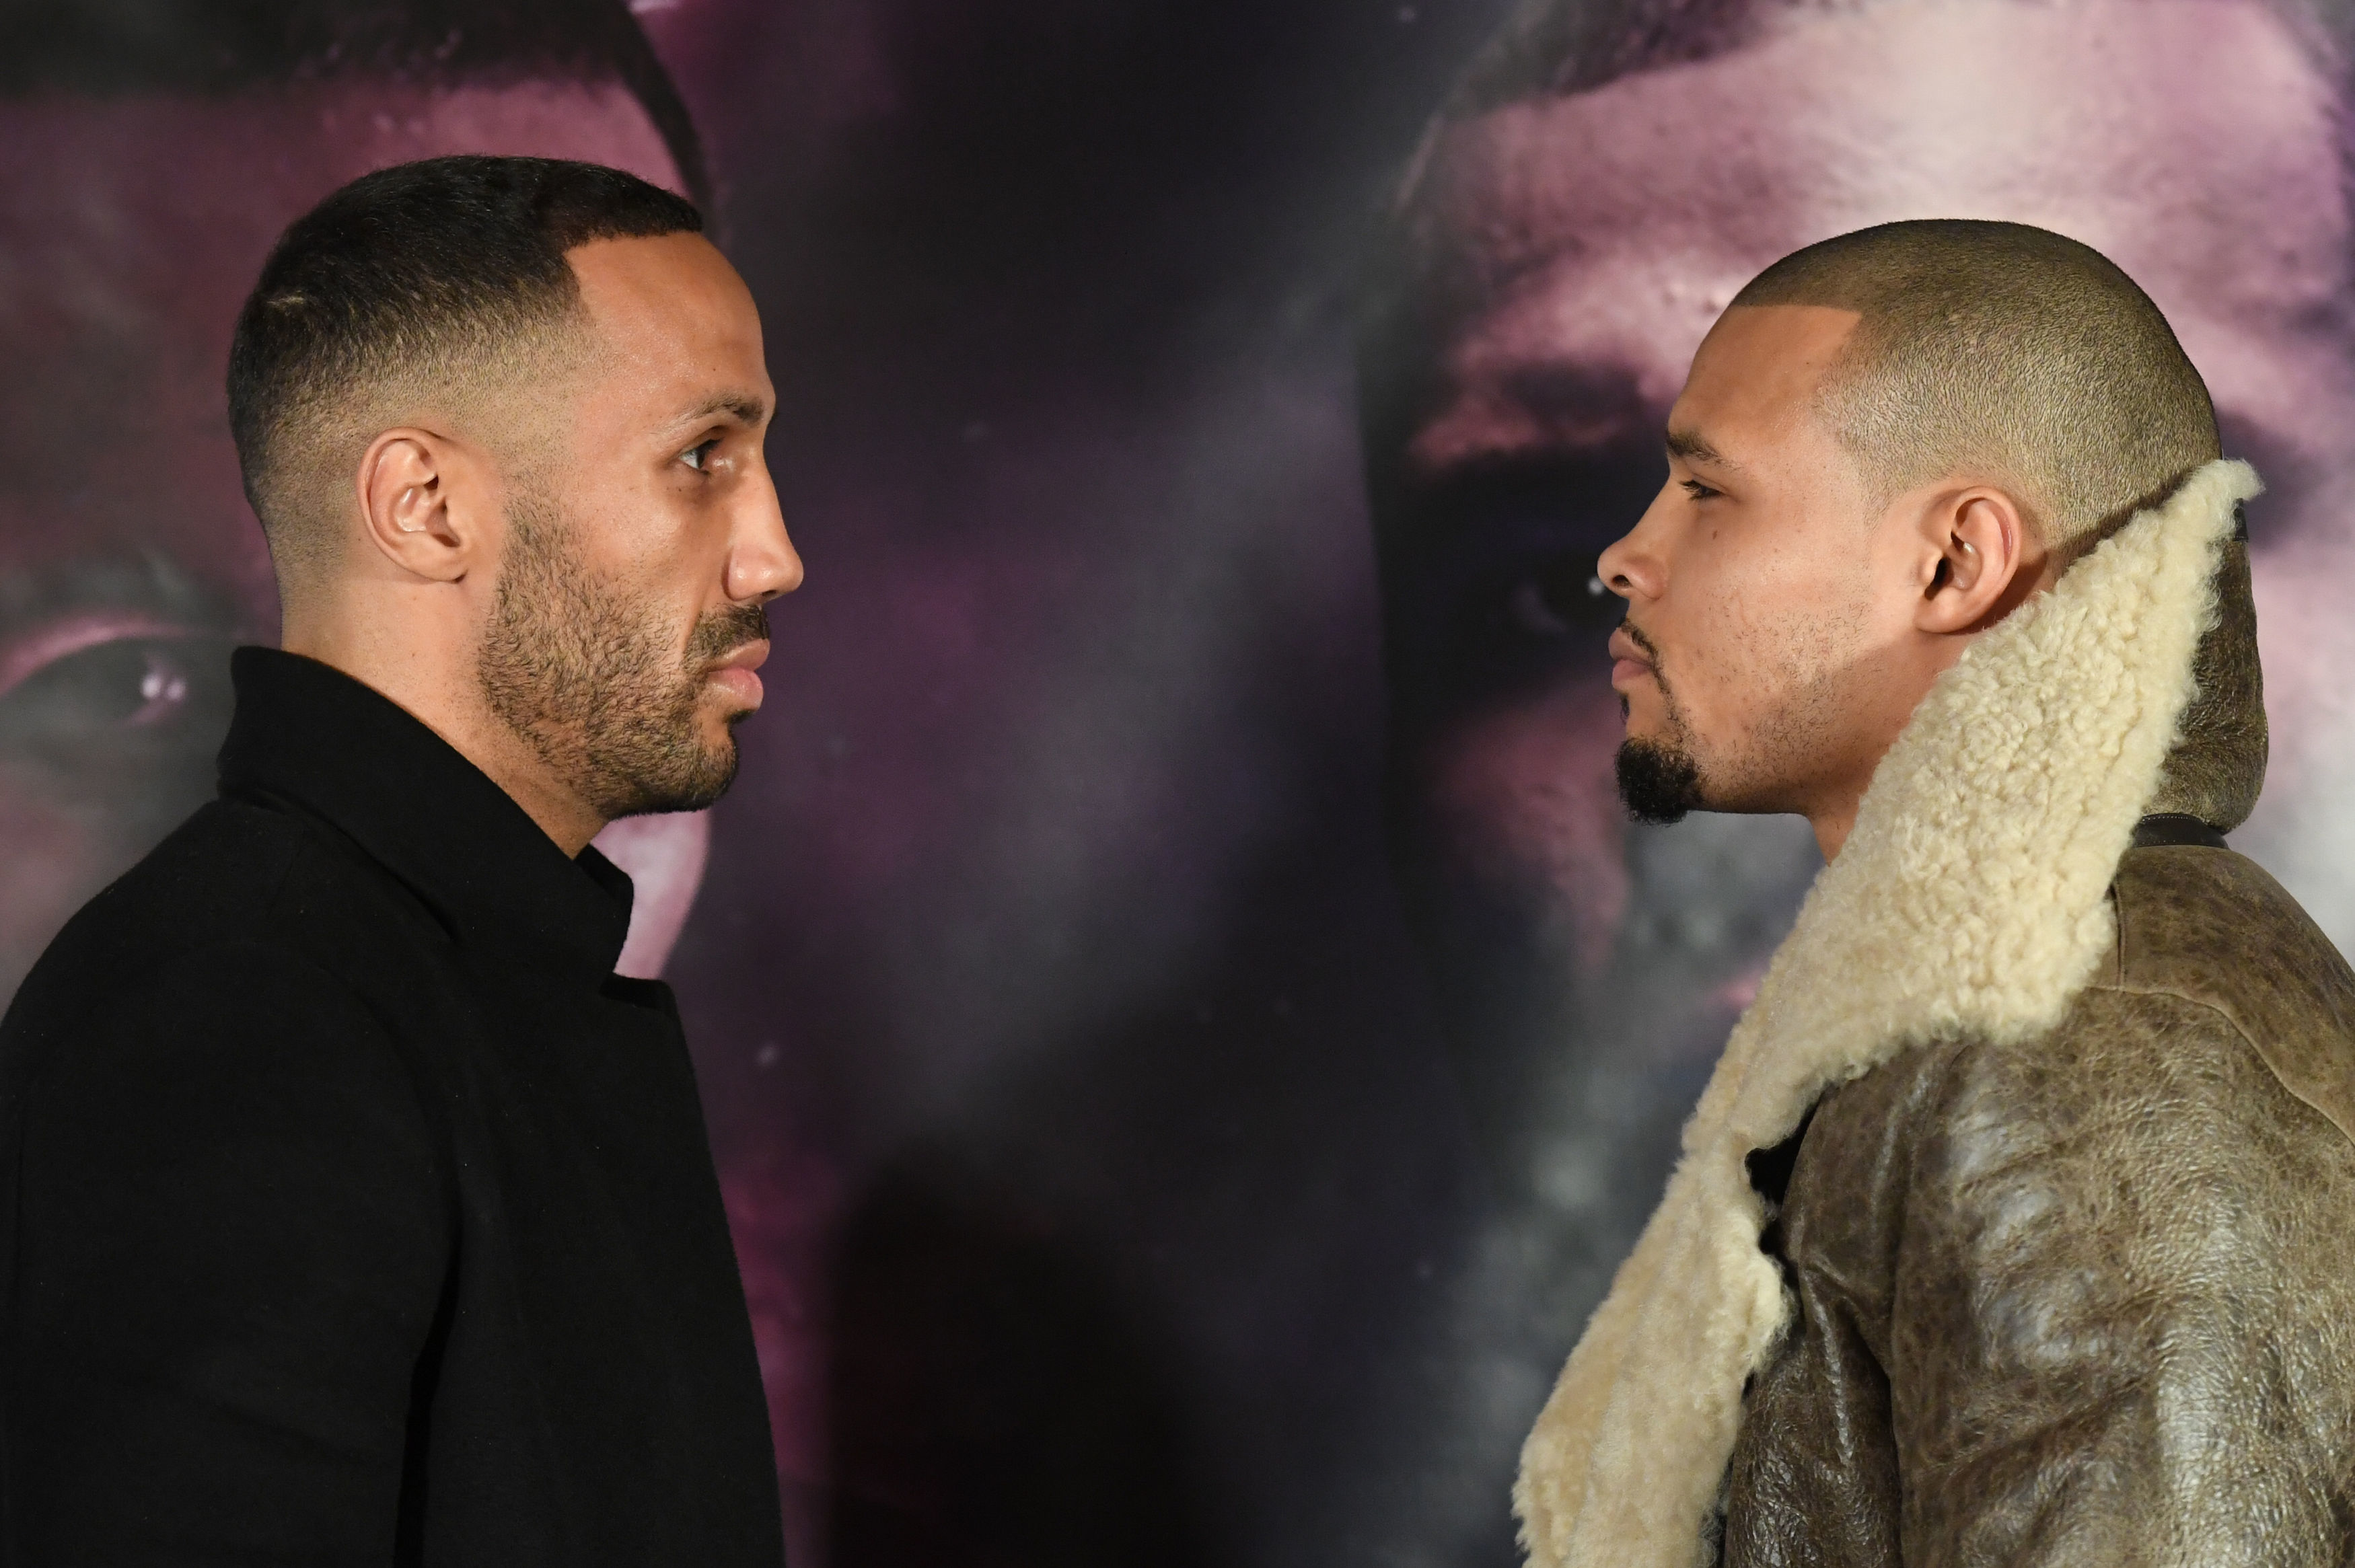 Venom Page said he is open to a fight with either DeGale or Eubank after they fight on Saturday